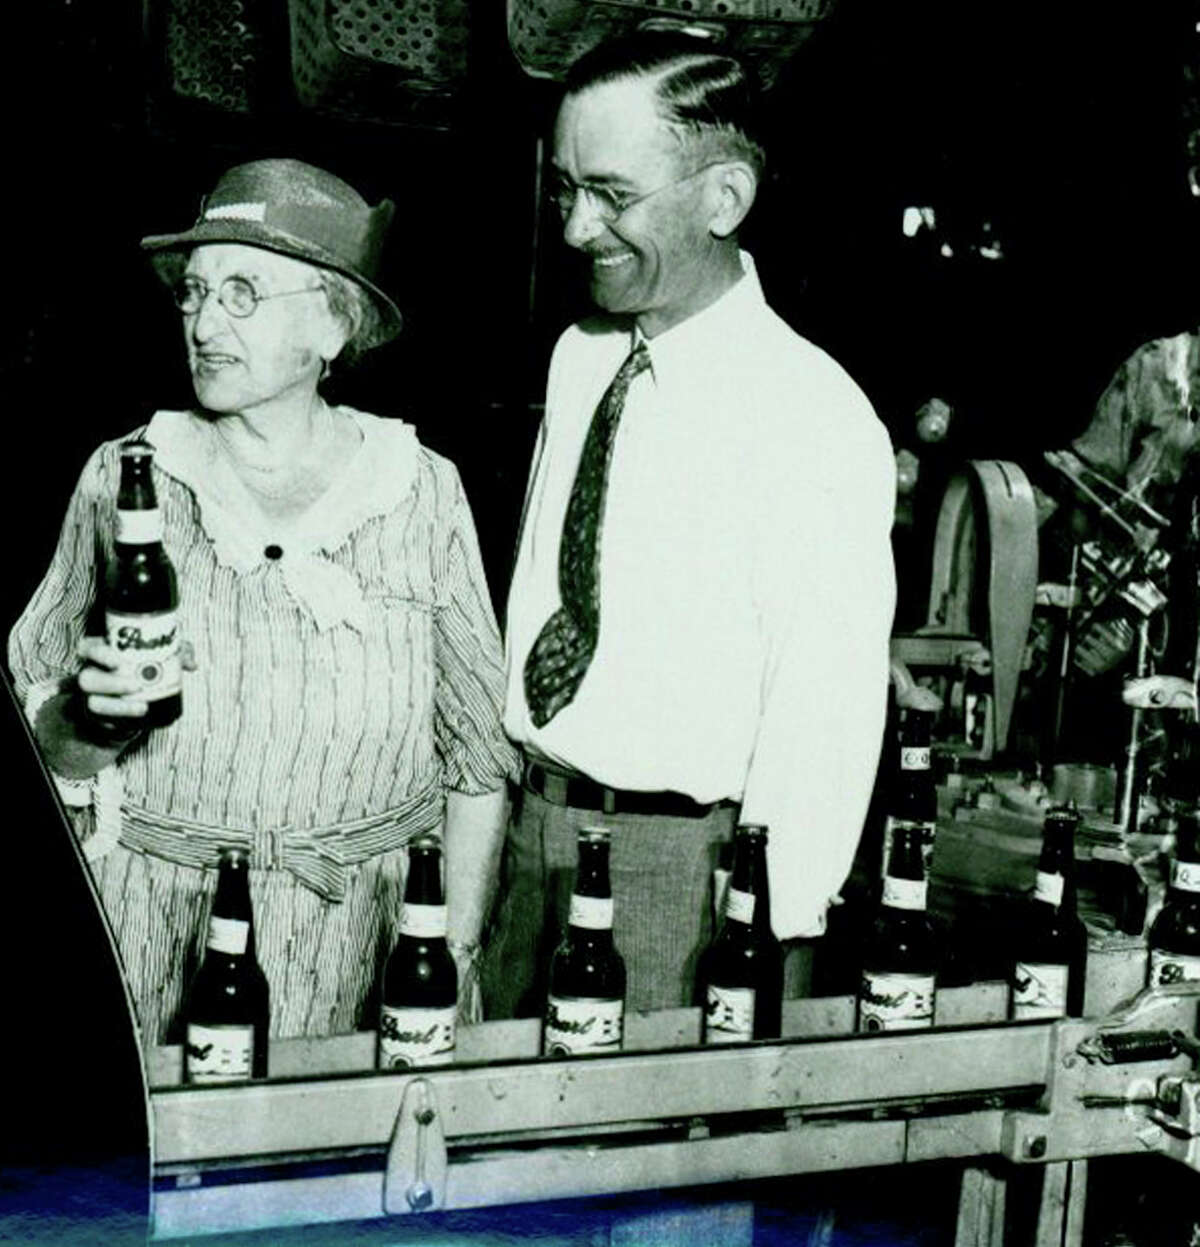 1. Emma Koehler took over Pearl Brewery in 1914 after her husband died, according to Hotel Emma's website. Koehler is seen here on the left holding the first bottle of beer produced by Pearl Brewery after the repeal of Prohibition in 1933.